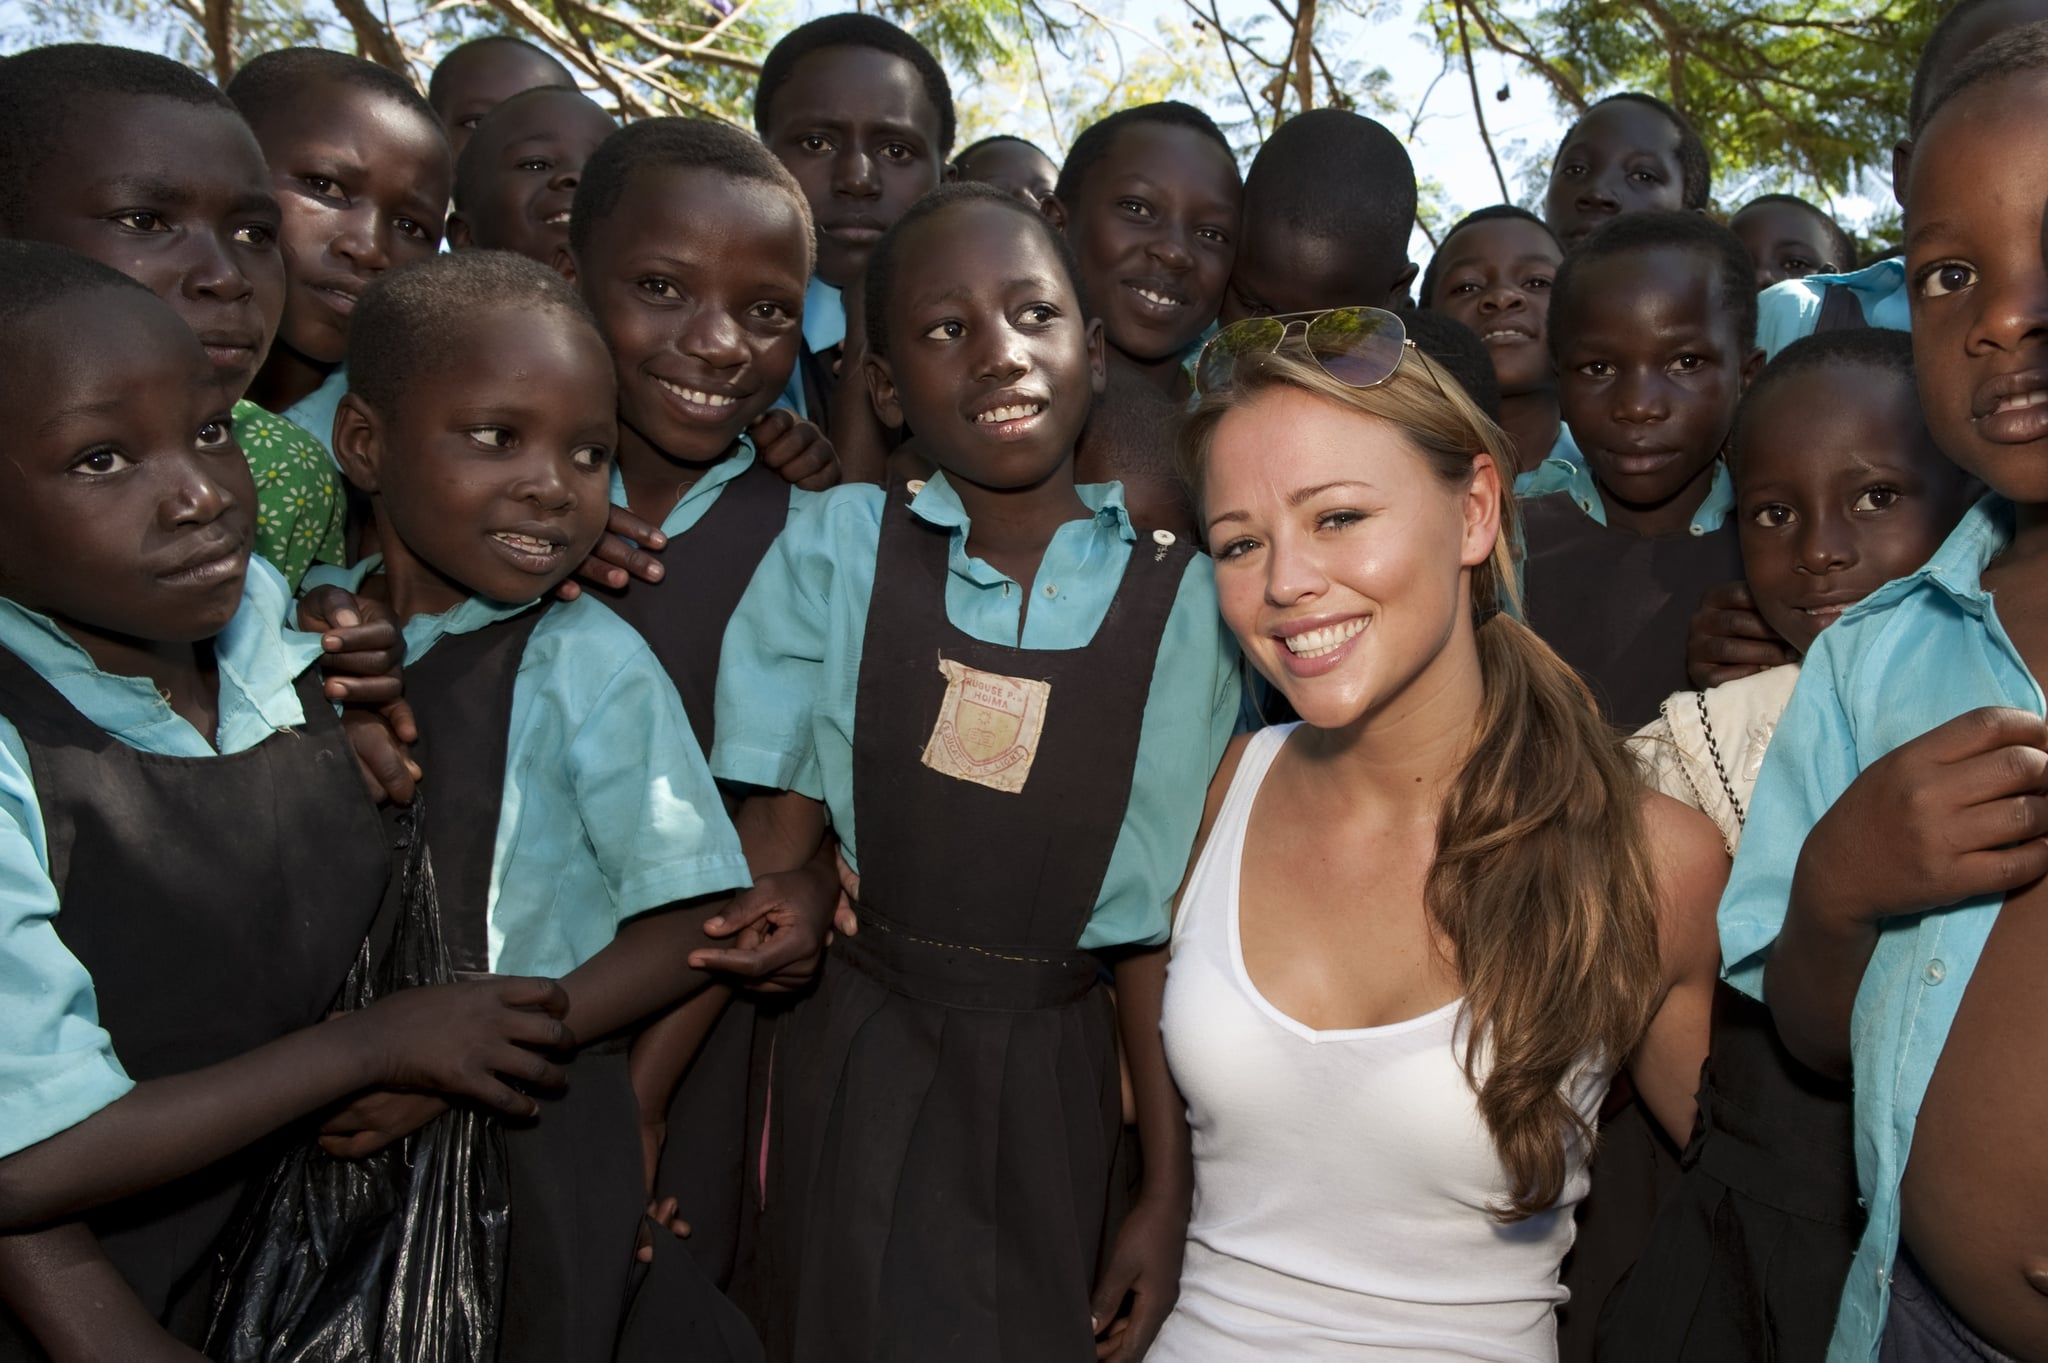 HOIMA, UGANDA - NOVEMBER 29: Kimberley Walsh poses with school local children as she visits a School where she is helping to hand out moquito nets on November 29, 2009 in Hoima, Uganda. Five of the nine celebrity Kilimanjaro climbers, Gary Barlow, Fearne Cotton, Ben Shepherd, Chris Moyles and Kimberley Walsh, saw all their hard work climbing the mighty Mount Kilimanjaro pay off as they witnessed for themselves how some of the money raised is being spent to help to fight malaria, Africa's biggest killer. The team are revisiting Africa to see how the money raised over Red Nose Day is being spent, as well as helping to hand out malaria nets. You can see how the team got on by watching BBC One 6.30pm Sunday 27th December.  (Photo by Des Willie/Comic Relief via Getty Images)